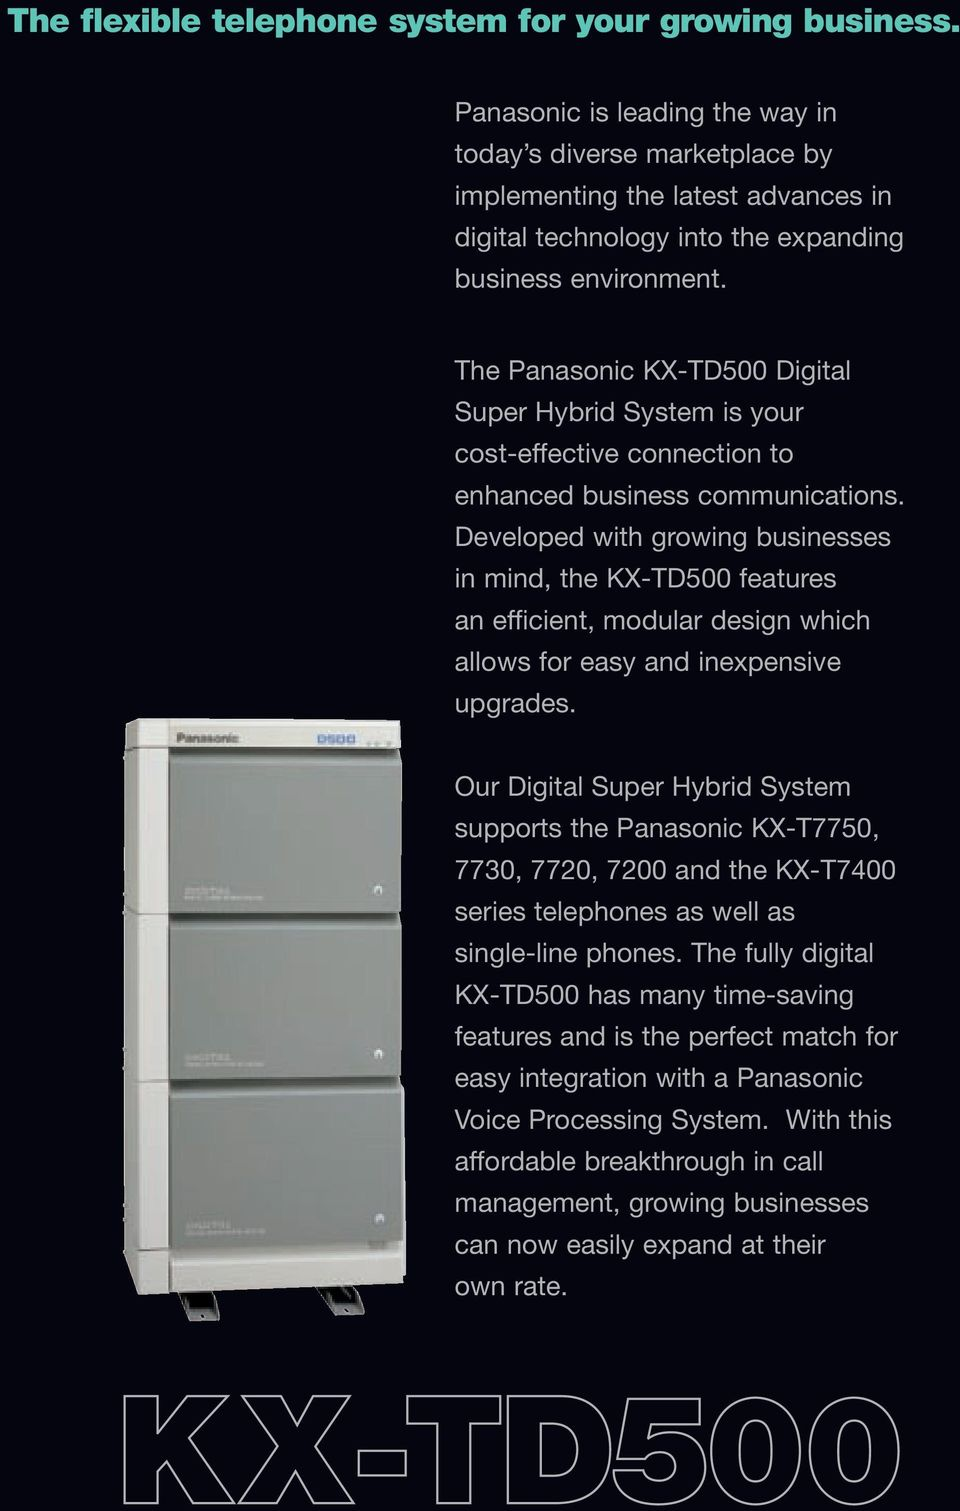 The Panasonic KX-TD500 Digital Super Hybrid System is your cost-effective connection to enhanced business communications.